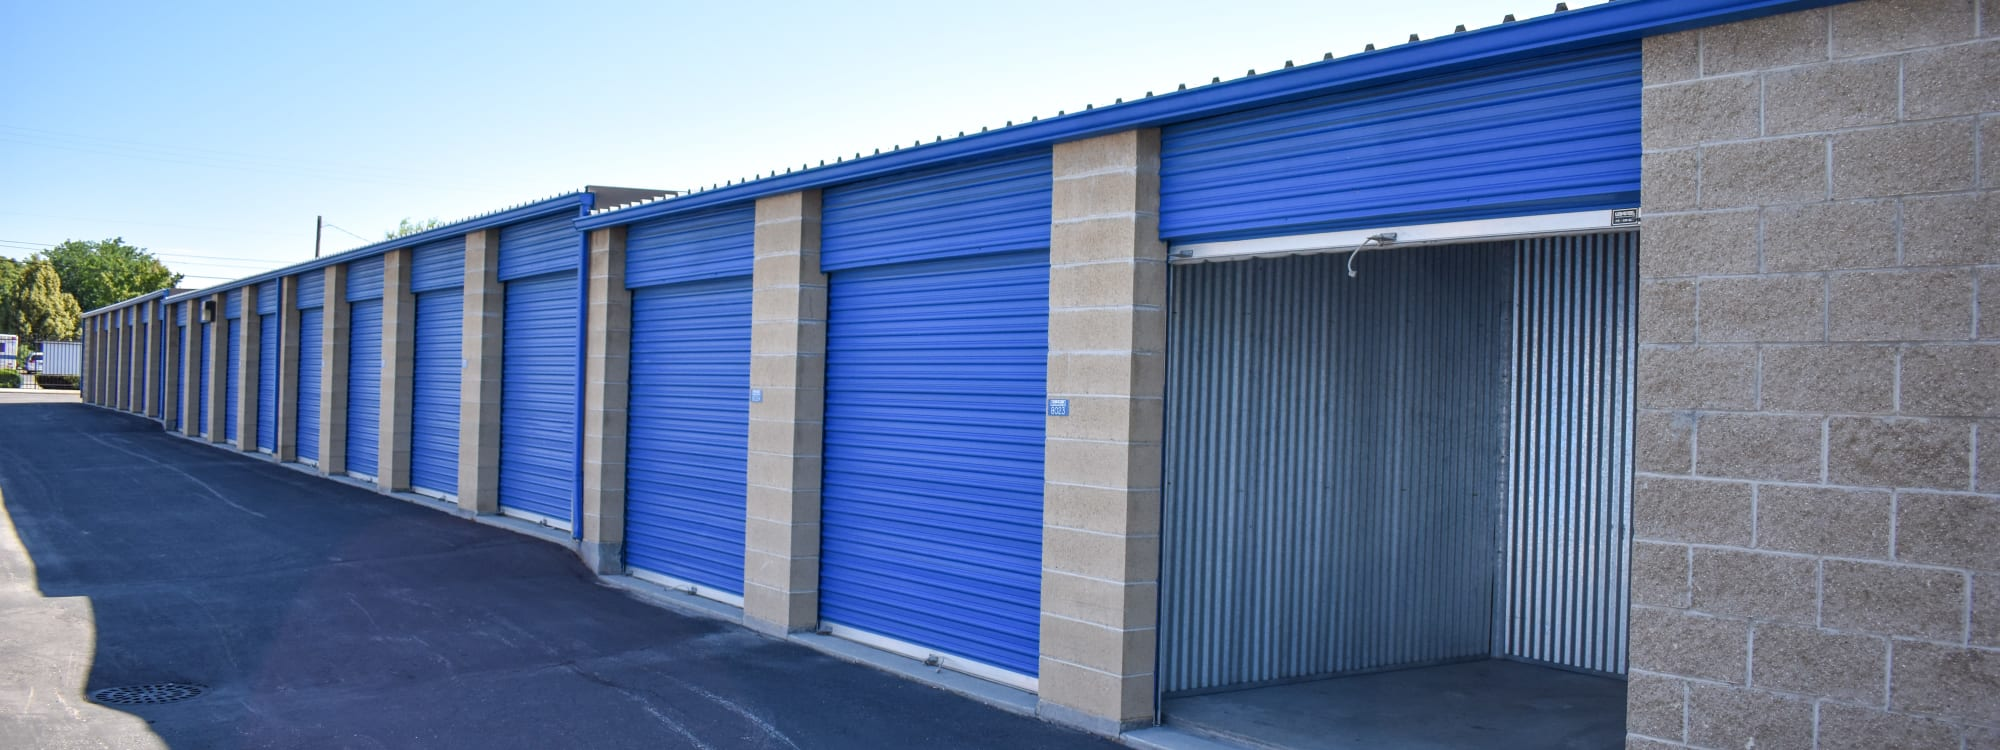 Self storage options at STOR-N-LOCK Self Storage in Boise, Idaho